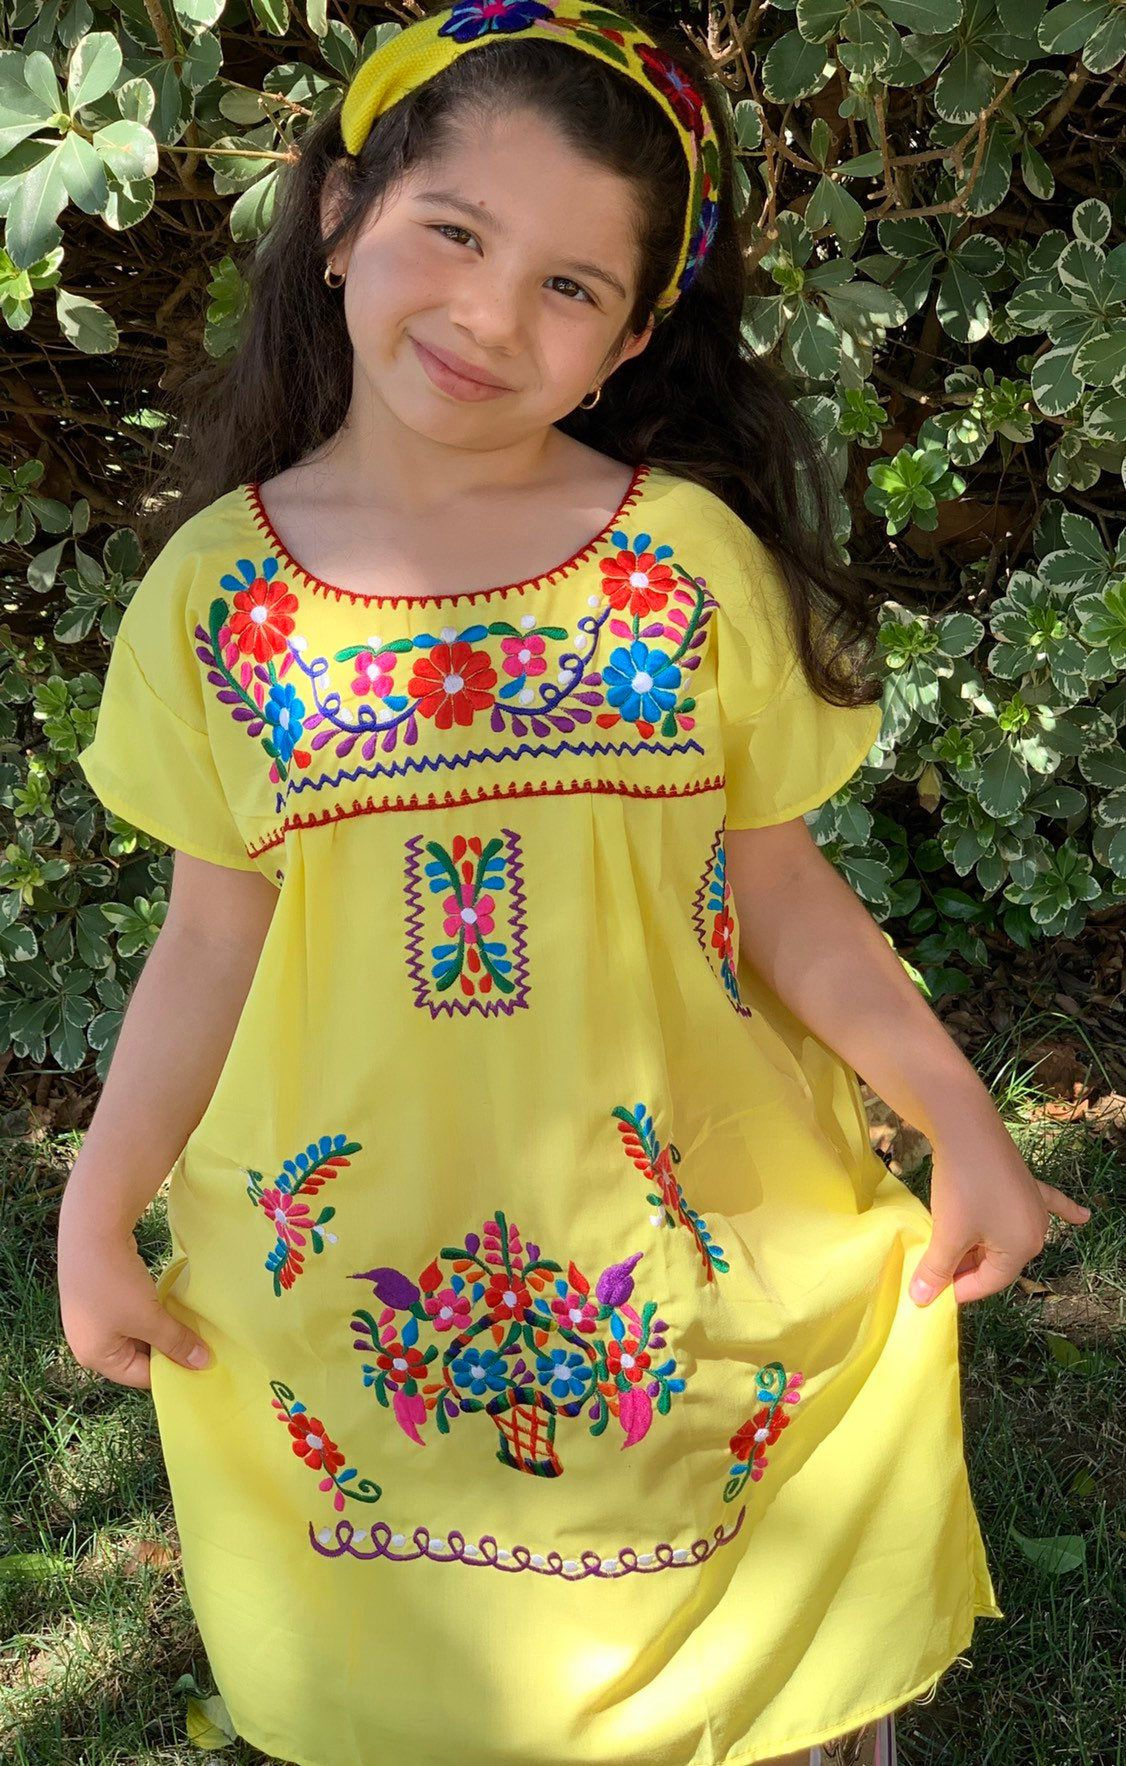 Mexican Embroidered Girls Dress Mexican Girls Yellow Etsy Girls Yellow Dress Girls Dresses Size 6 Mexican Dresses [ 1766 x 1126 Pixel ]